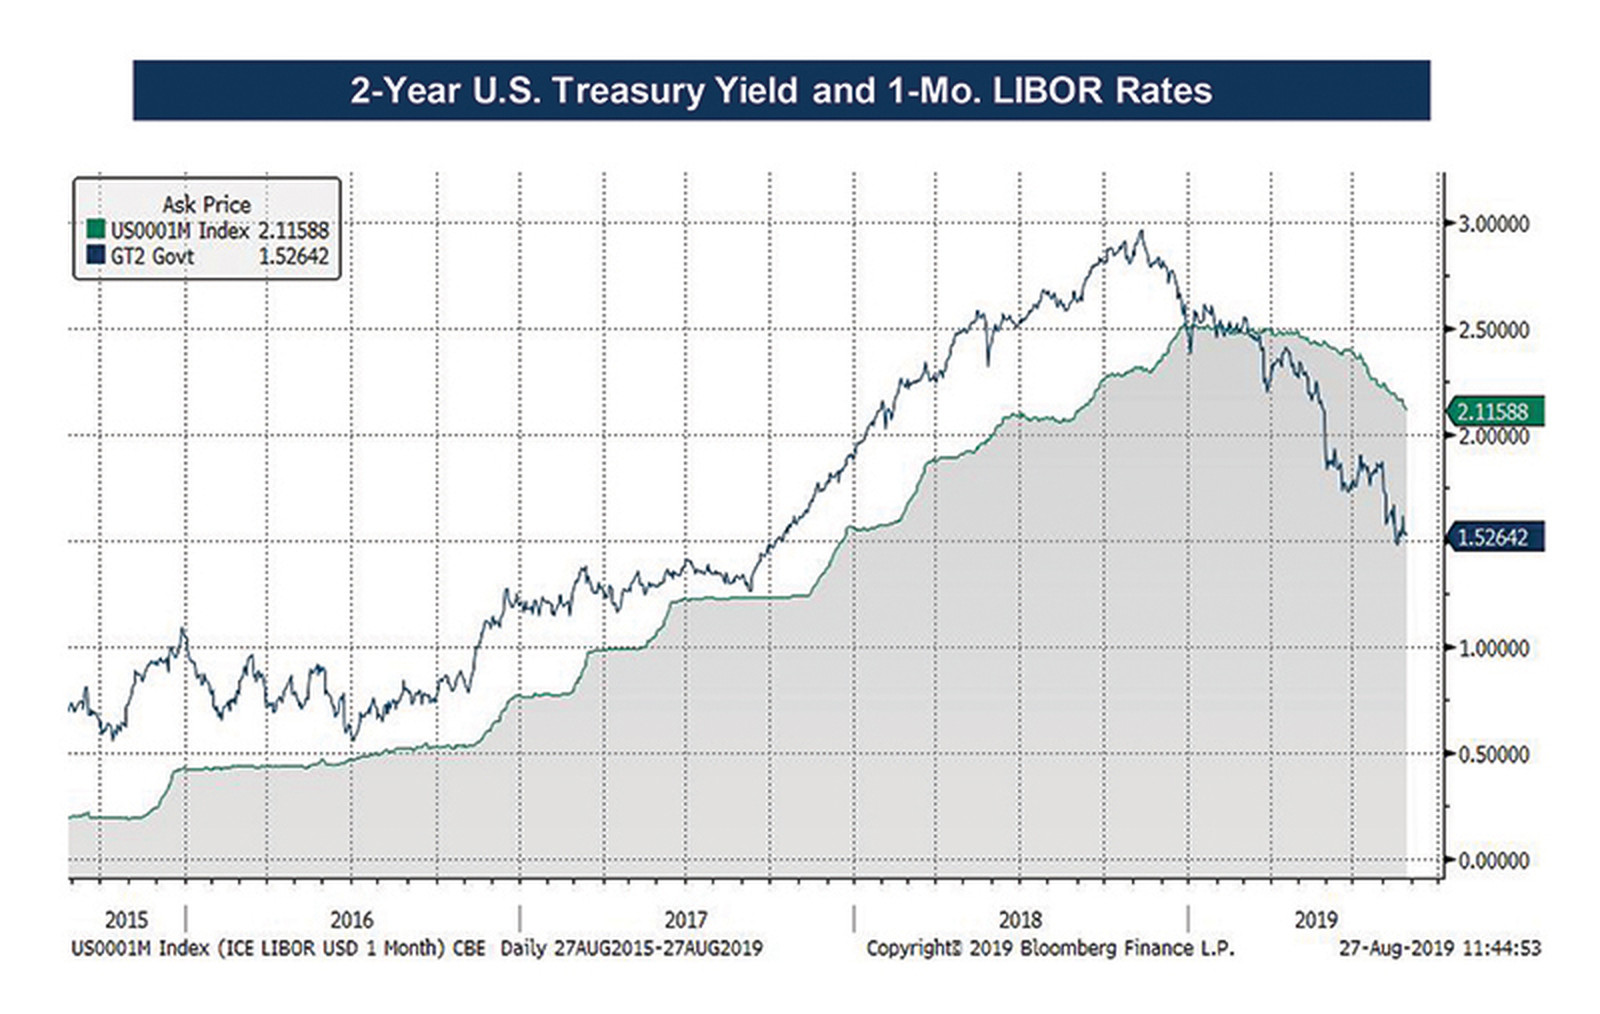 interest-rate-risk-chart-cropped-2.jpg